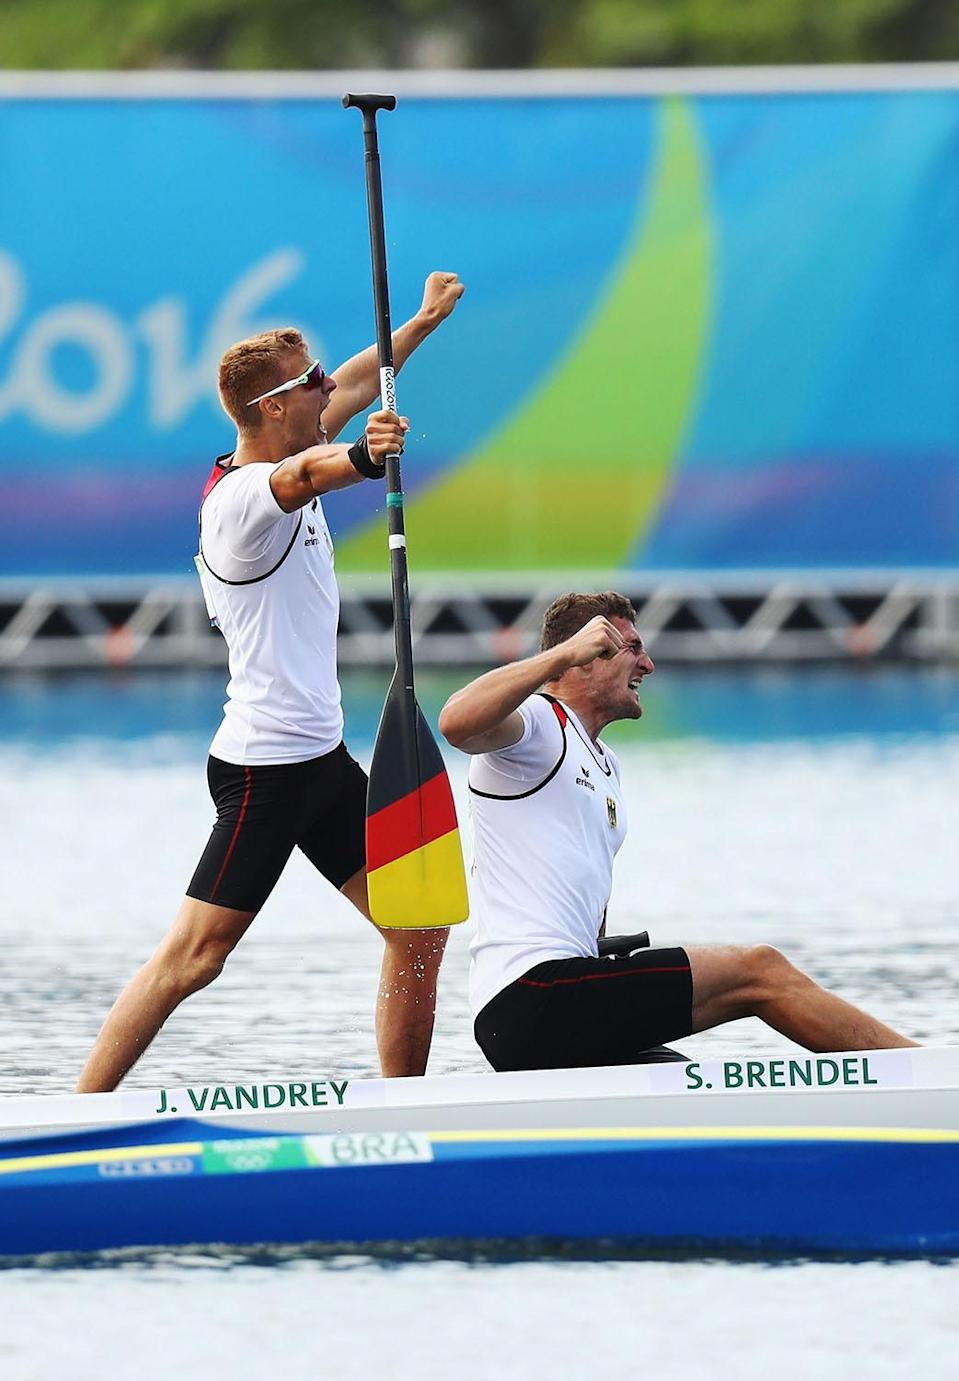 <p>Sebastian Brendel of Germany and Jan Vandrey of Germany celebrate winning the Men's Canoe Double 1000m on Day 15 of the Rio 2016 Olympic Games at the Lagoa Stadium on August 20, 2016 in Rio de Janeiro, Brazil. (Photo by Ryan Pierse/Getty Images) </p>